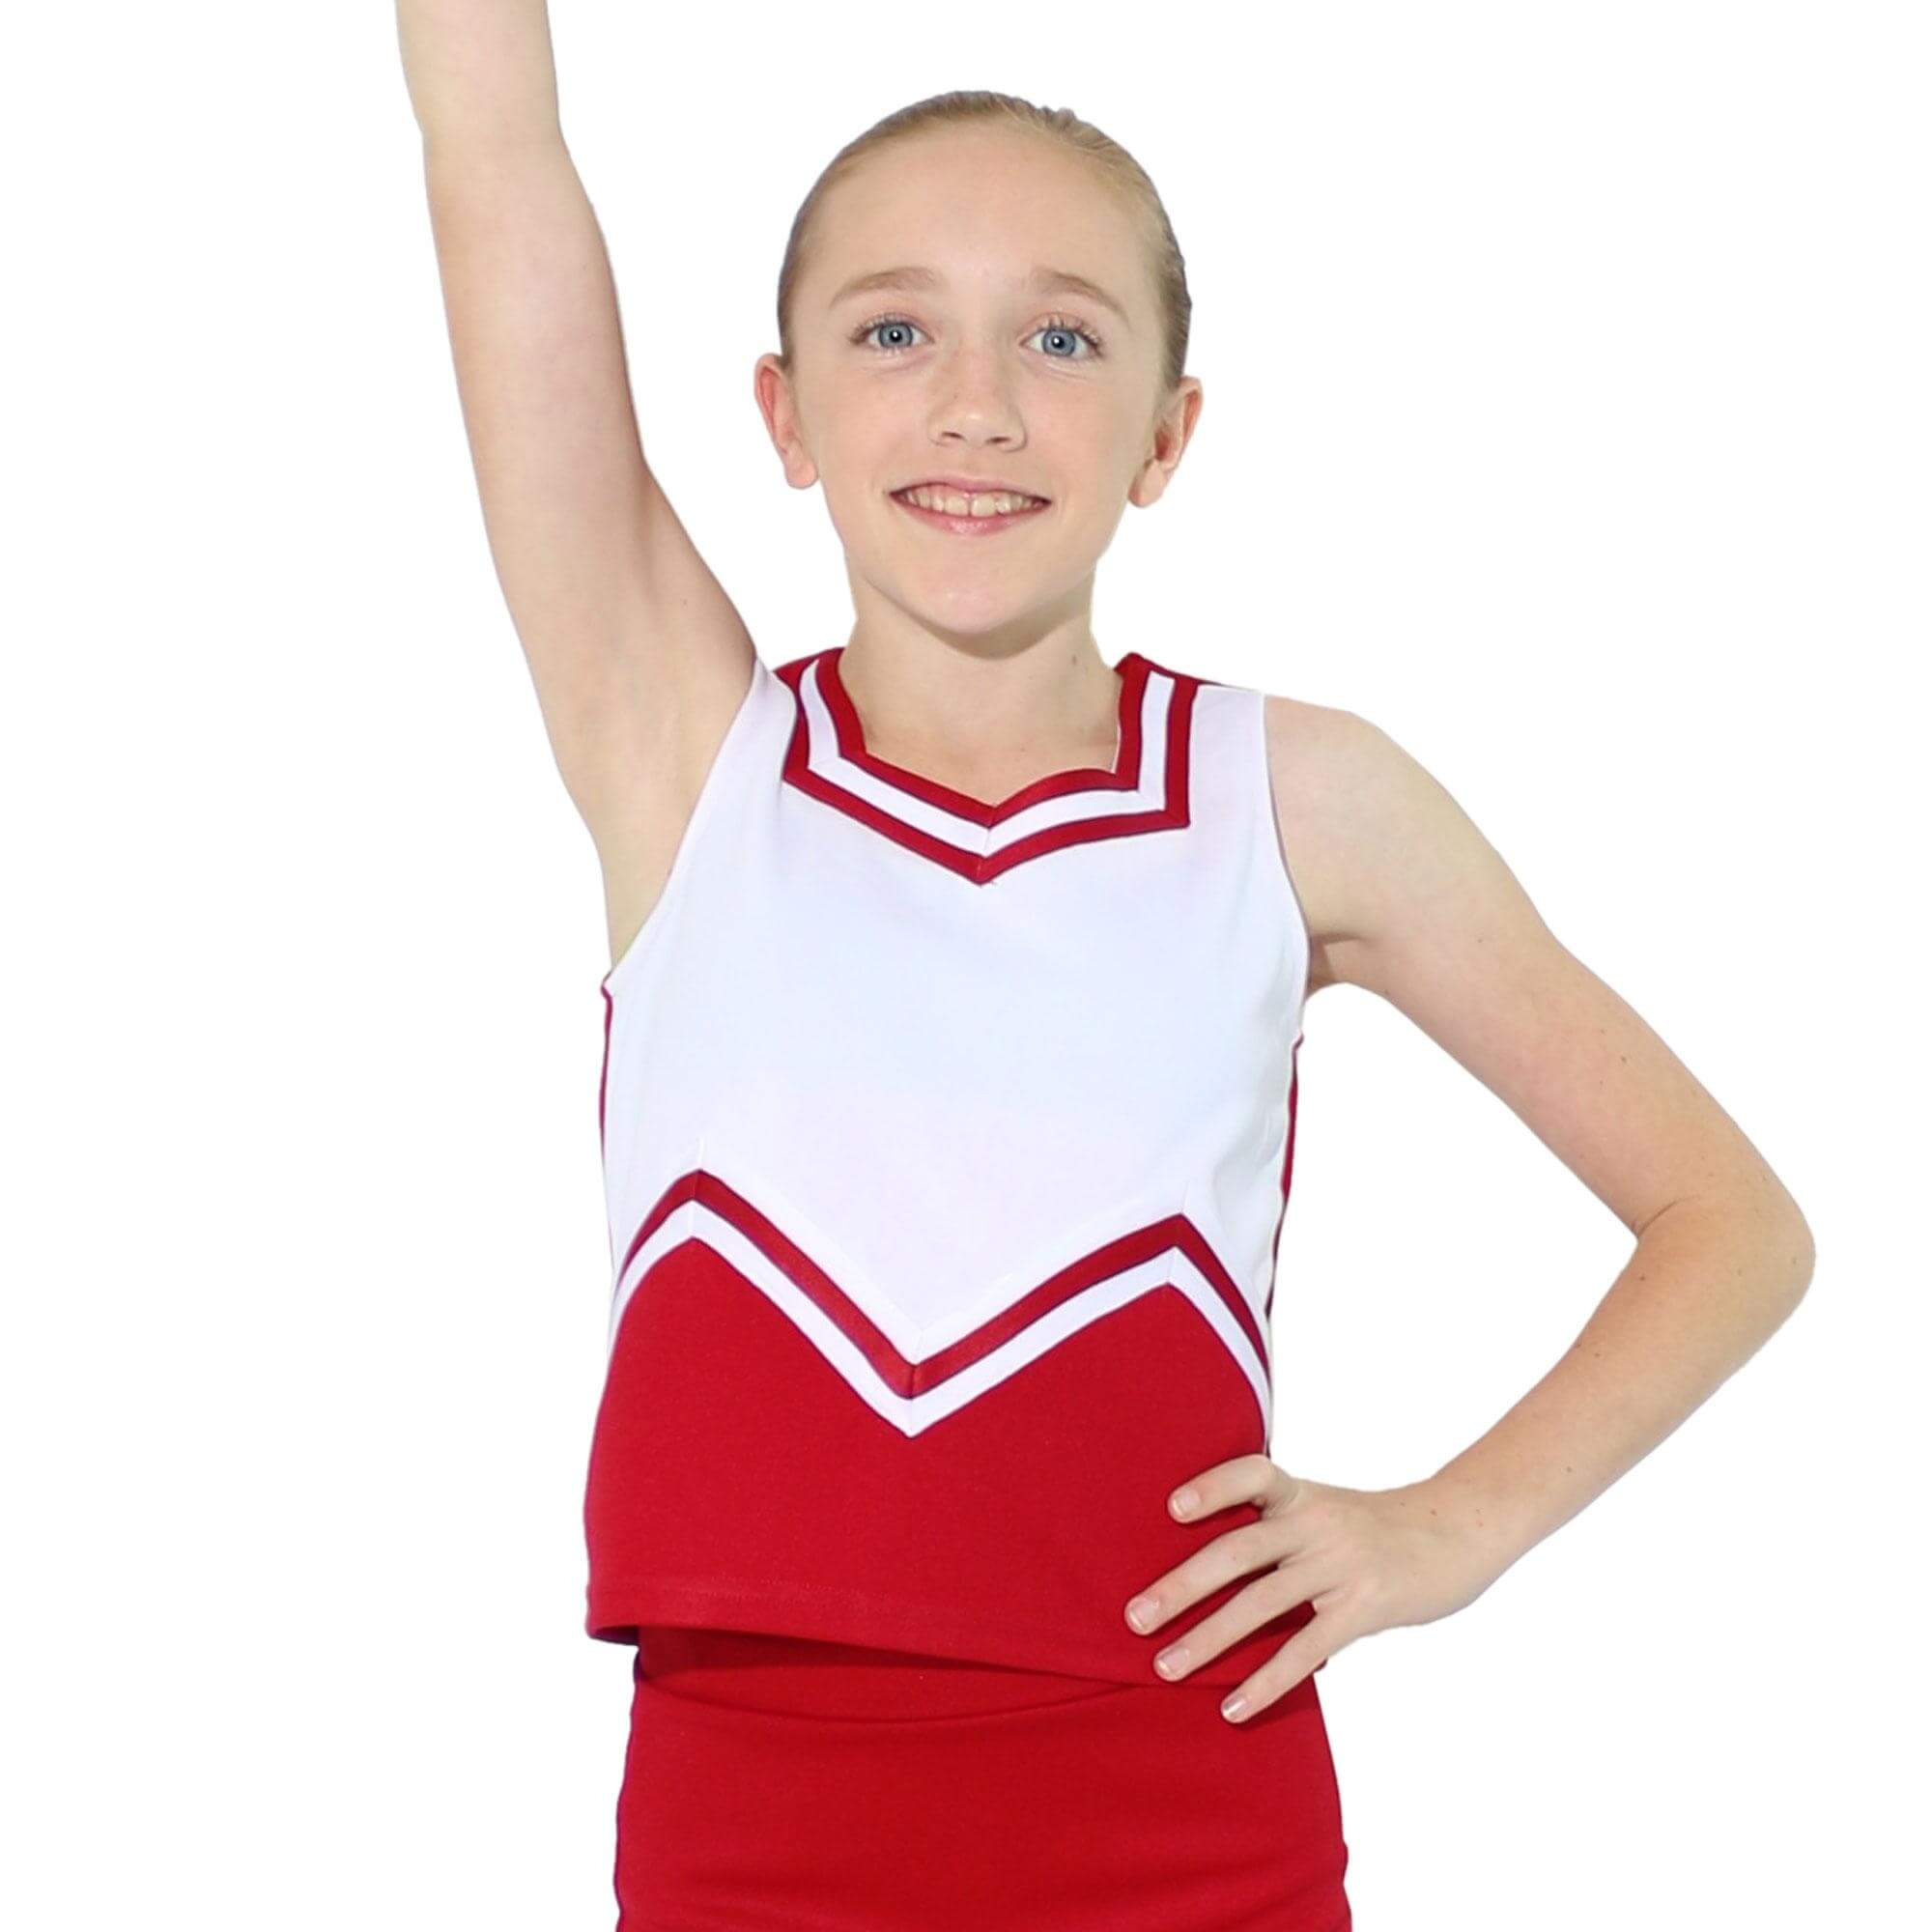 Danzcue Child M Sweetheart Cheerleaders Uniform Shell Top